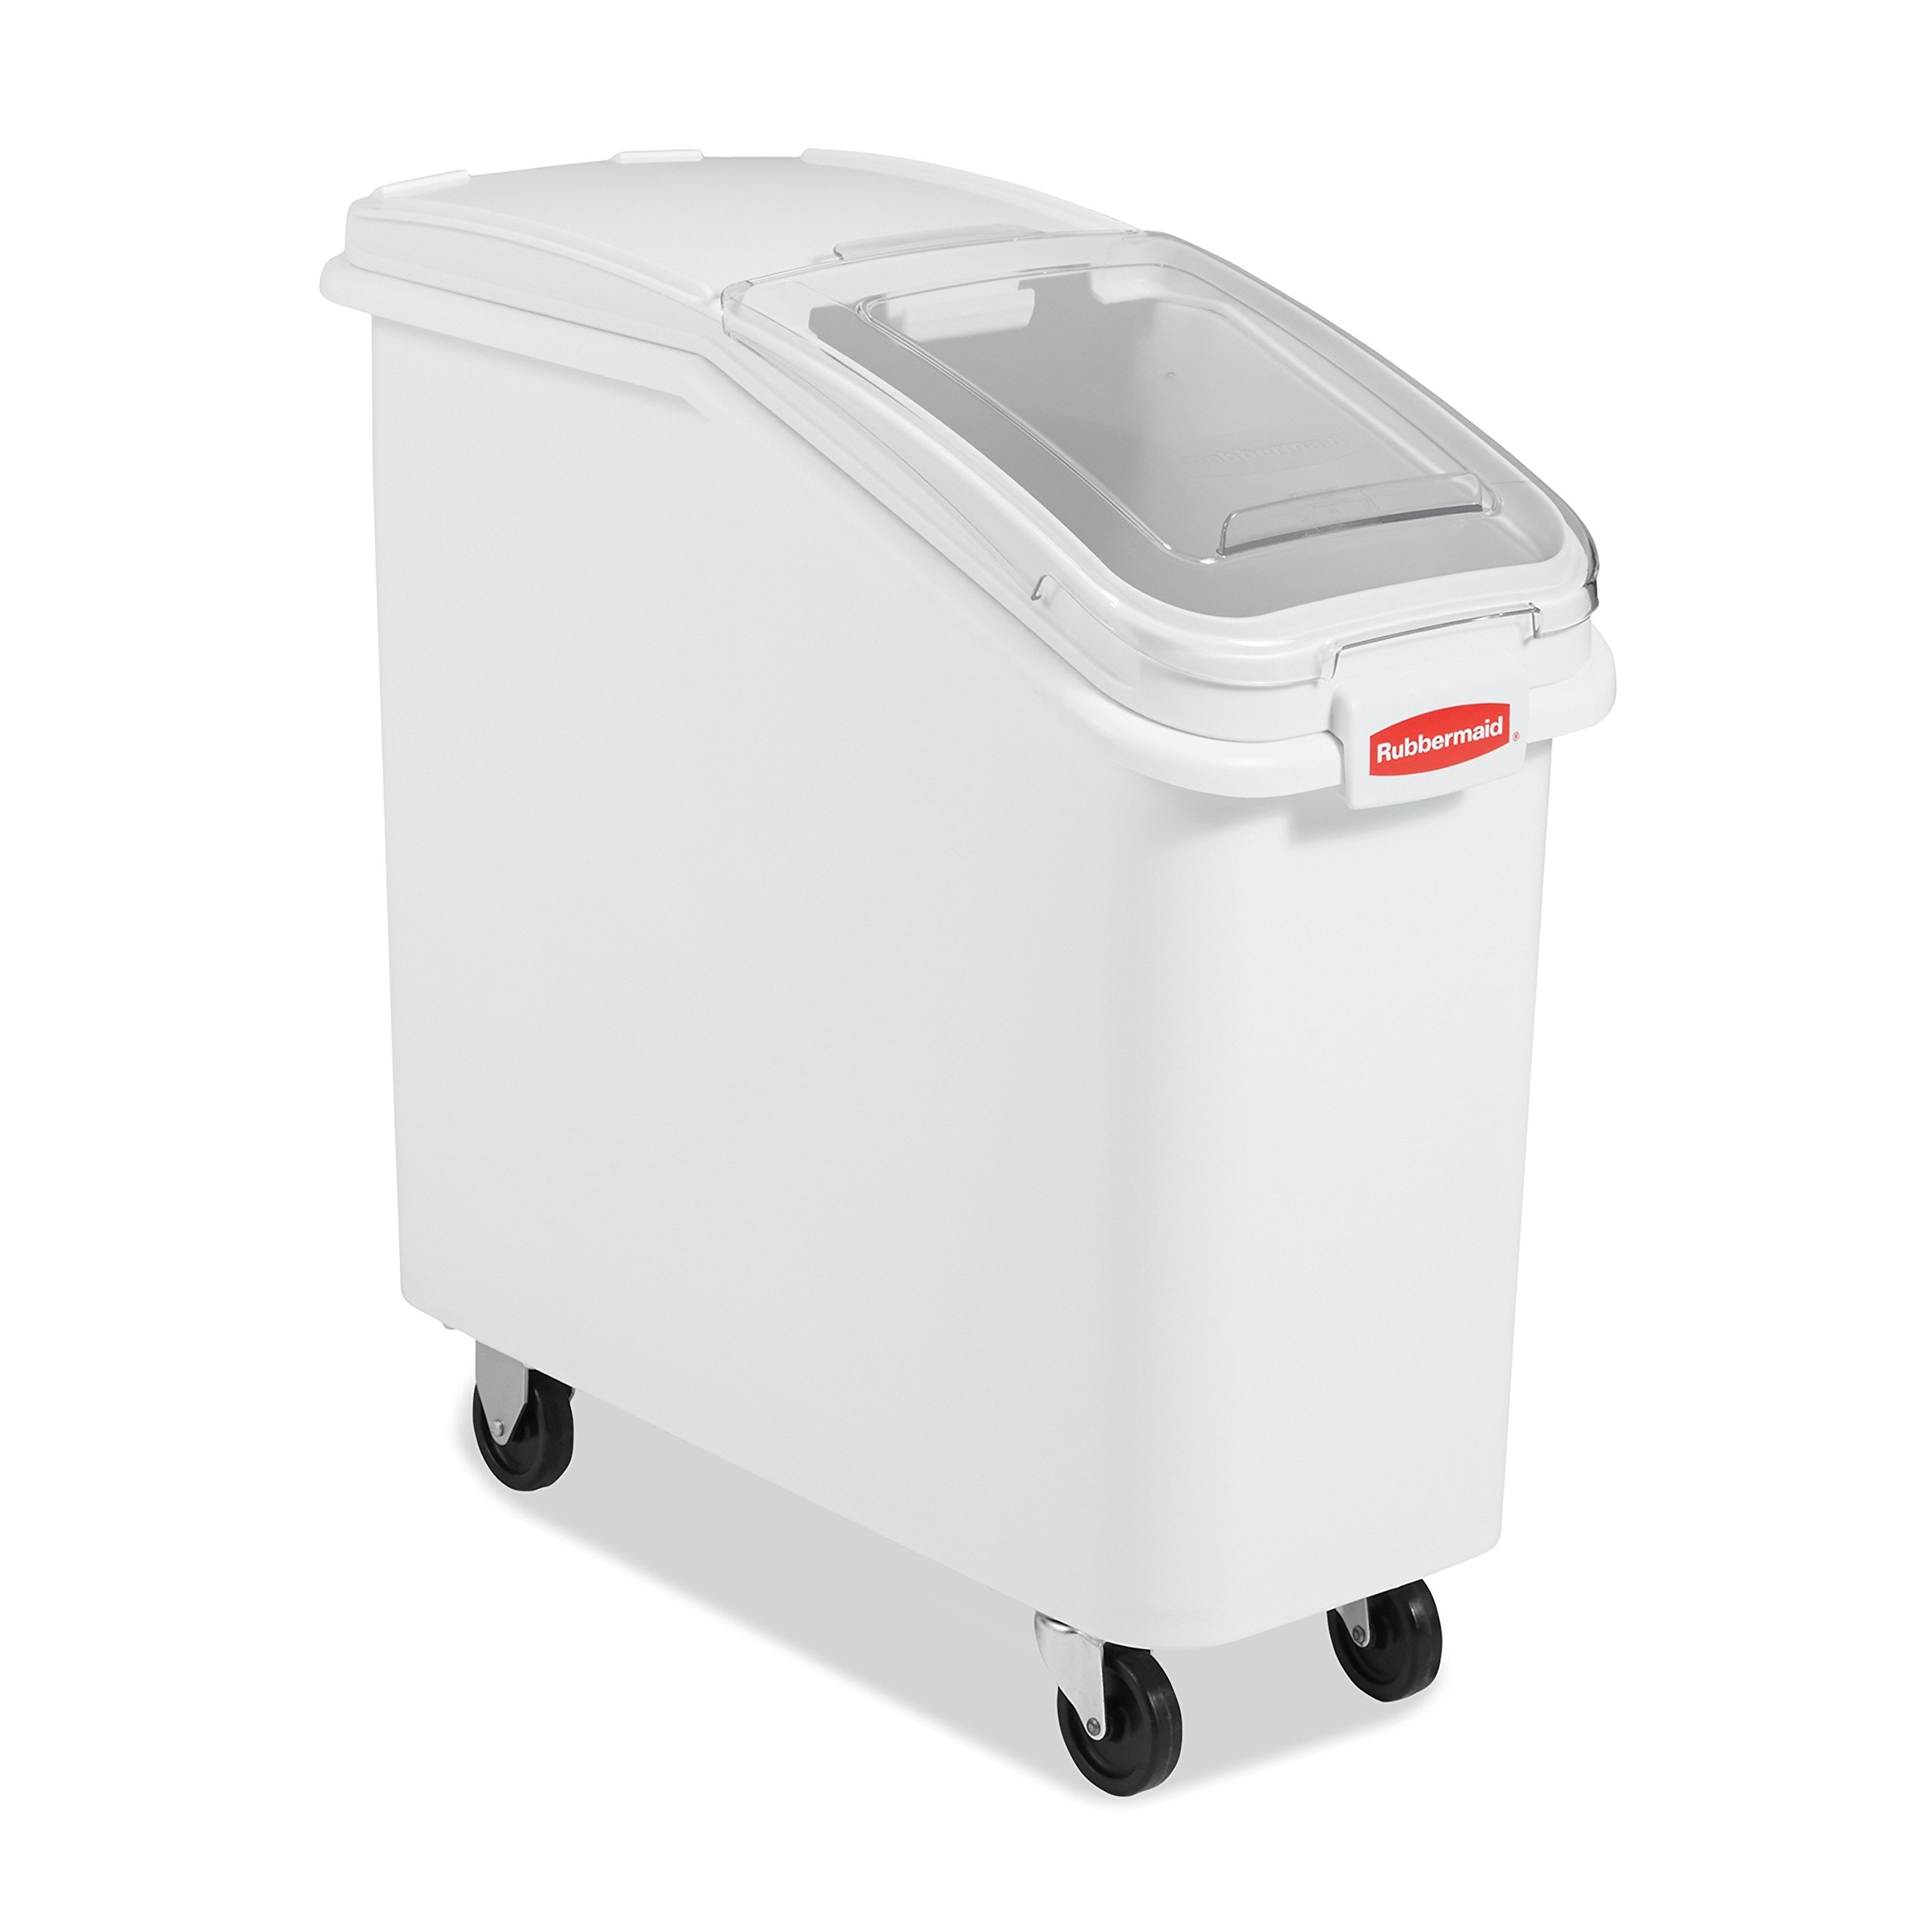 Rubbermaid Commercial ProSave Shelf-Storage Ingredient Bin With Scoop, Plastic, Stackable, 400-cup capacity, White, (FG360088WHT) by Rubbermaid Commercial Products (Image #1)